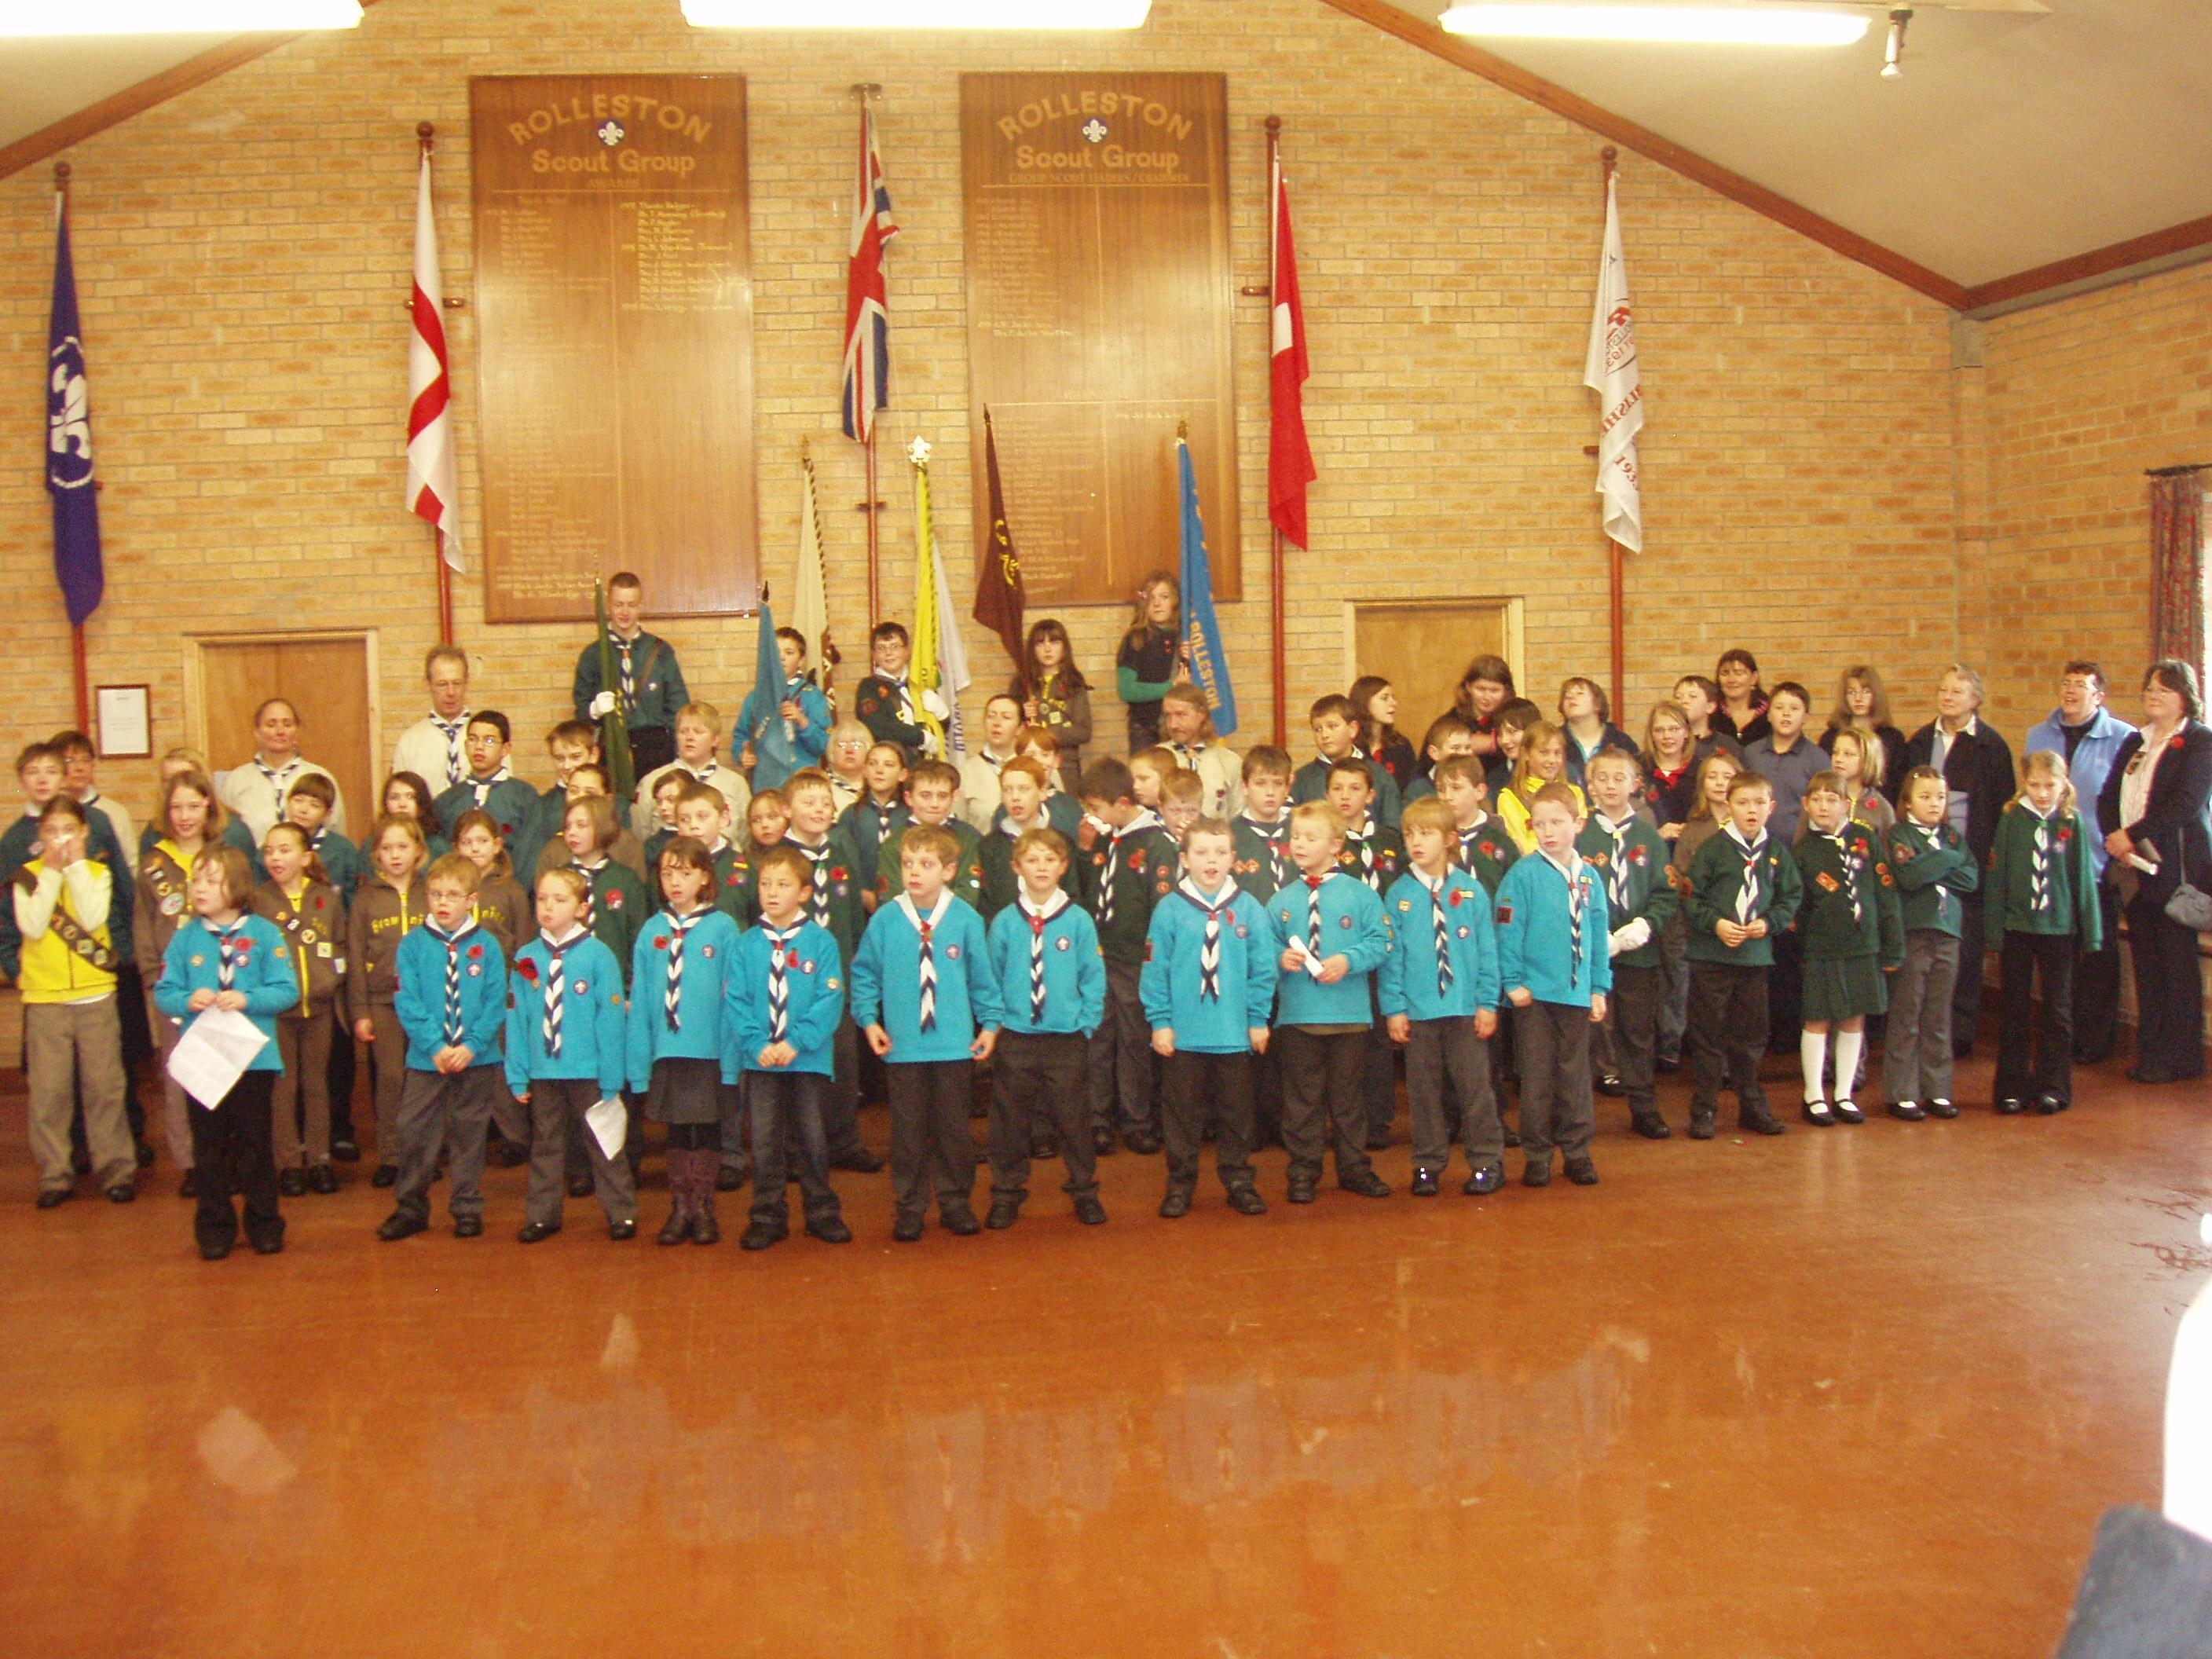 Rolleston Scout Group 2008